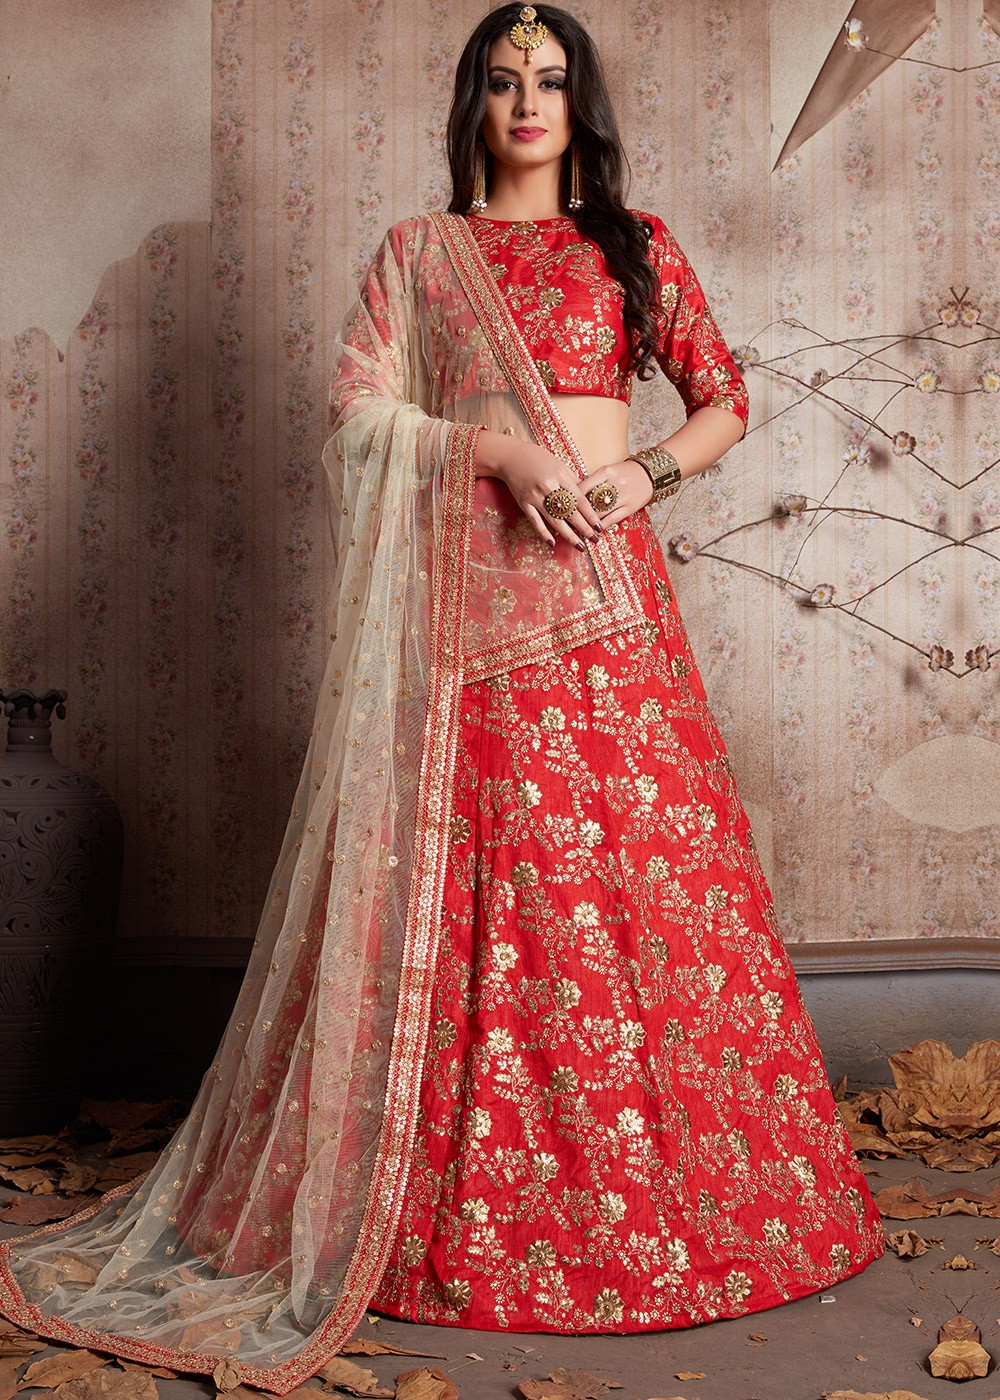 b57a2f5c38 Tap to expand · Coral Red Embroidered Designer Bridal Lehenga Choli Online  Shopping USA ...